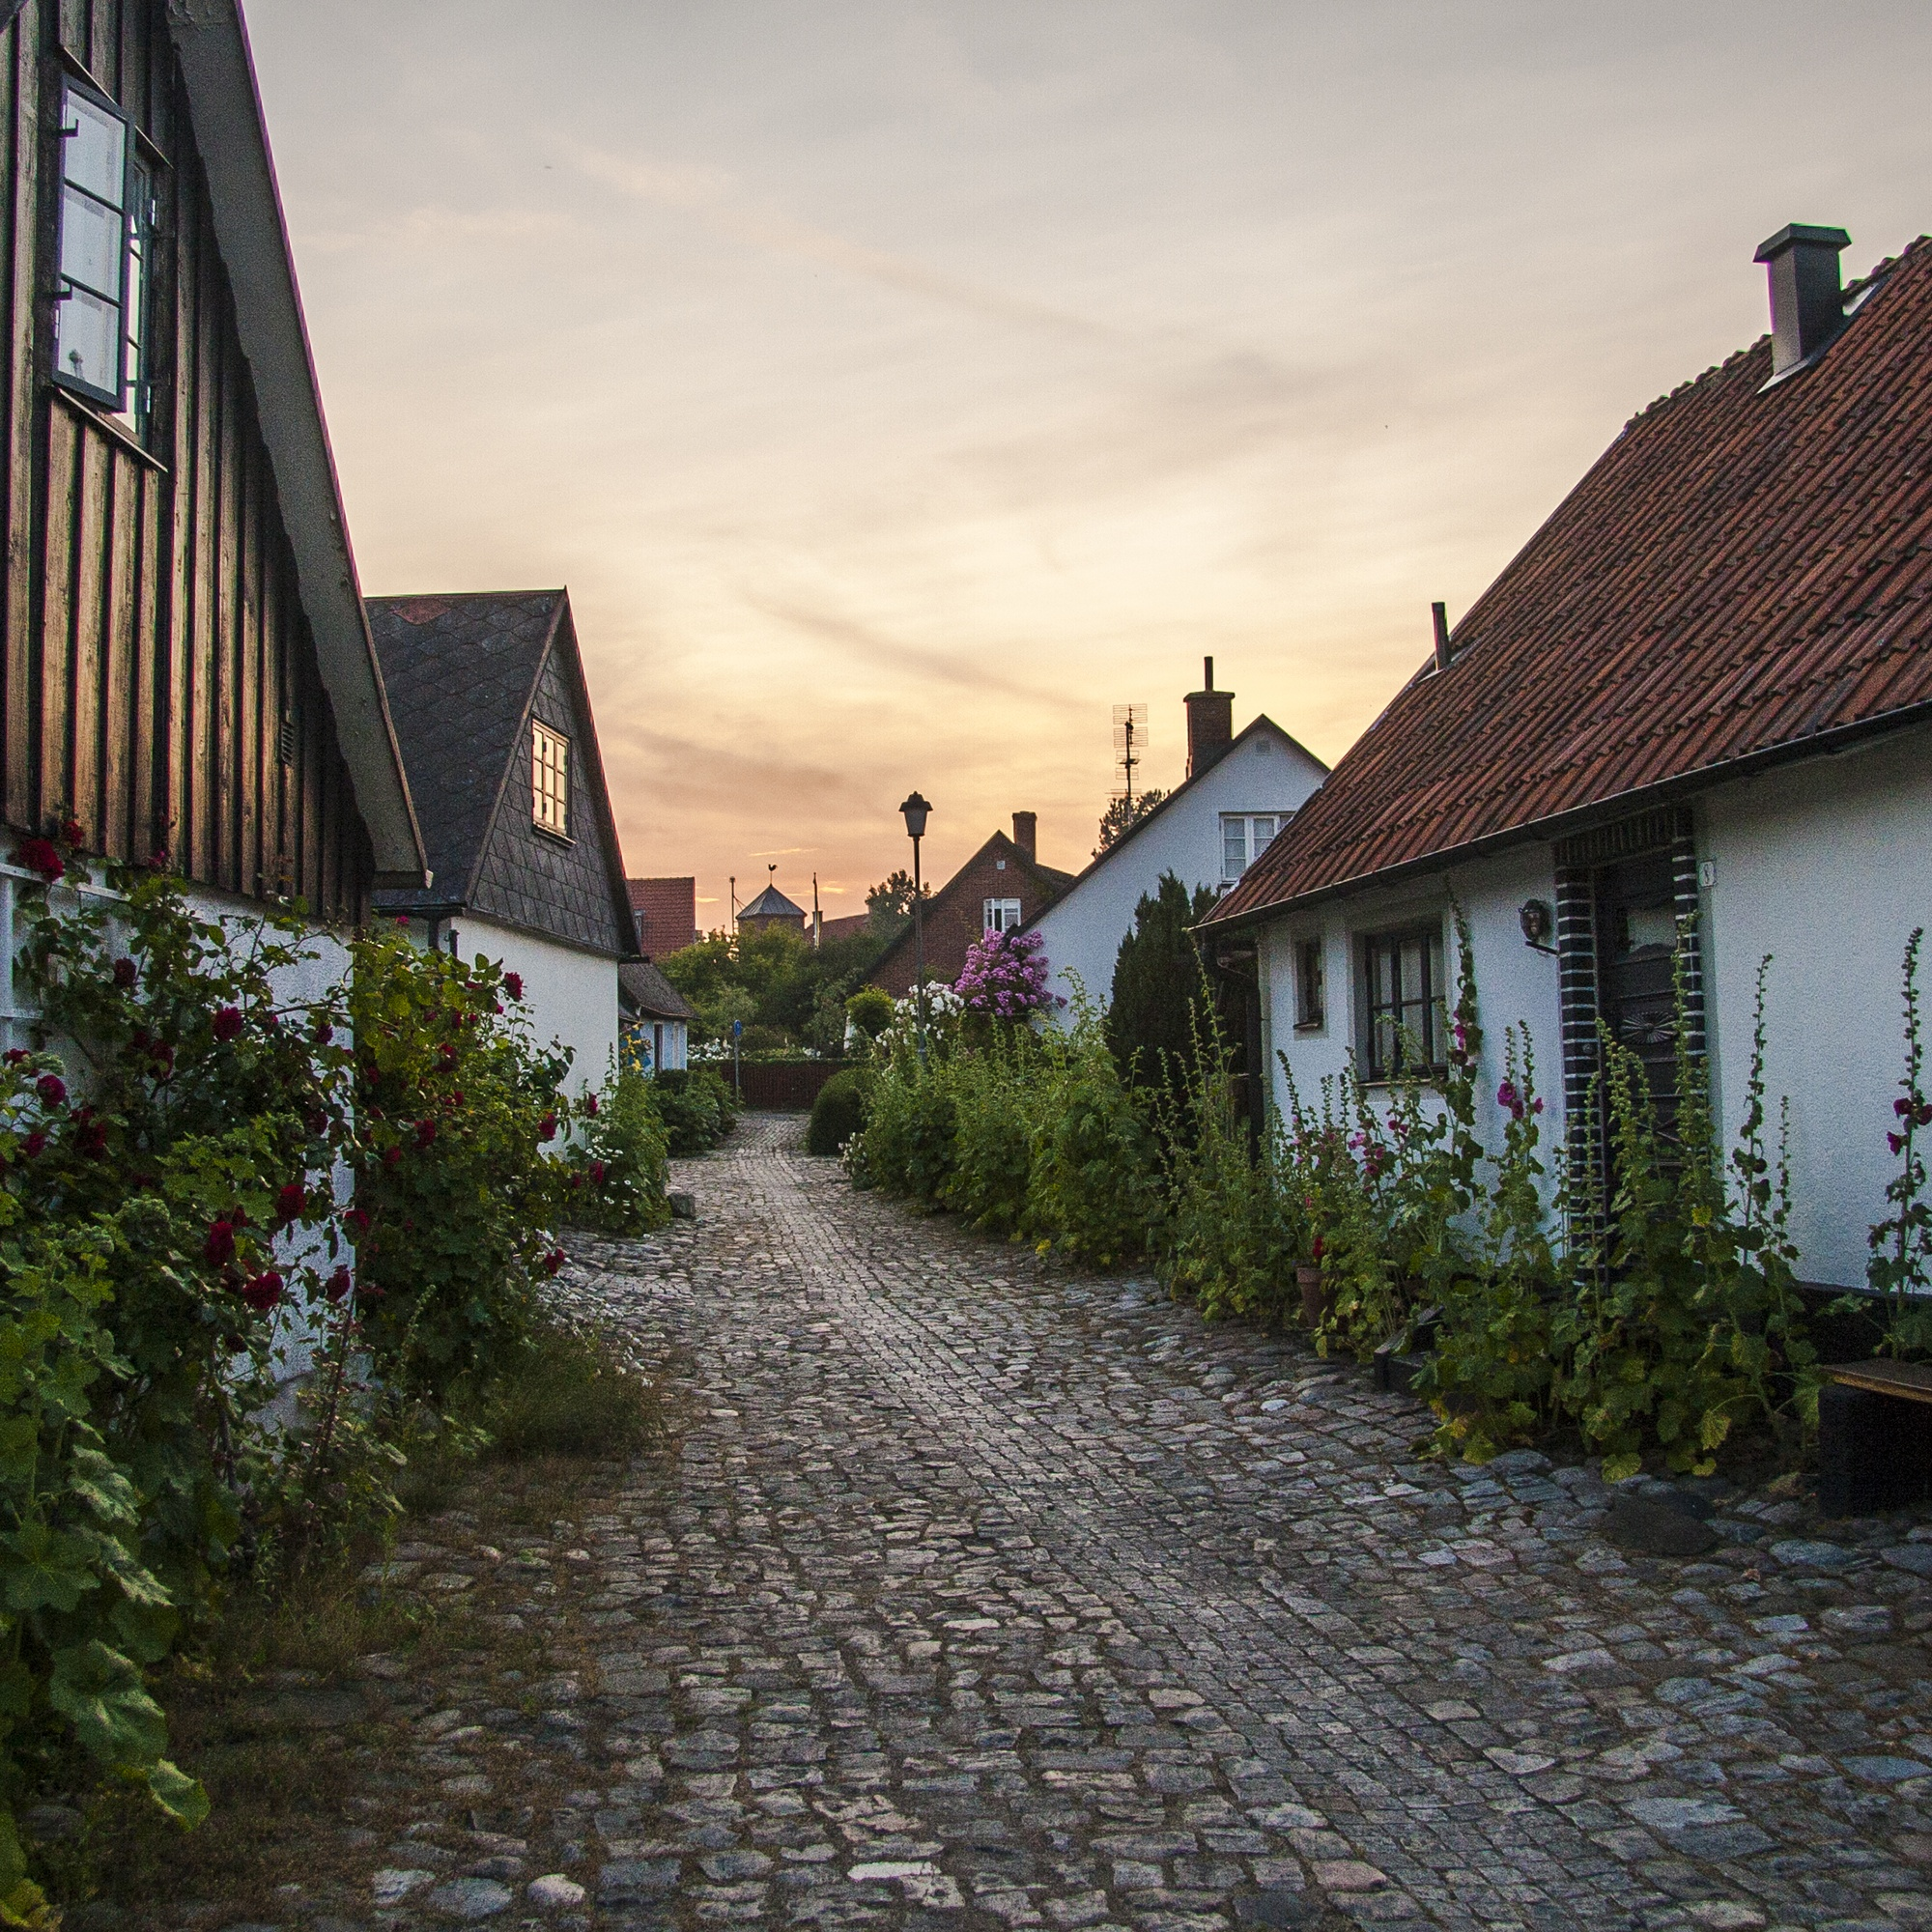 Town of Skillinge in Skåne, southern Sweden